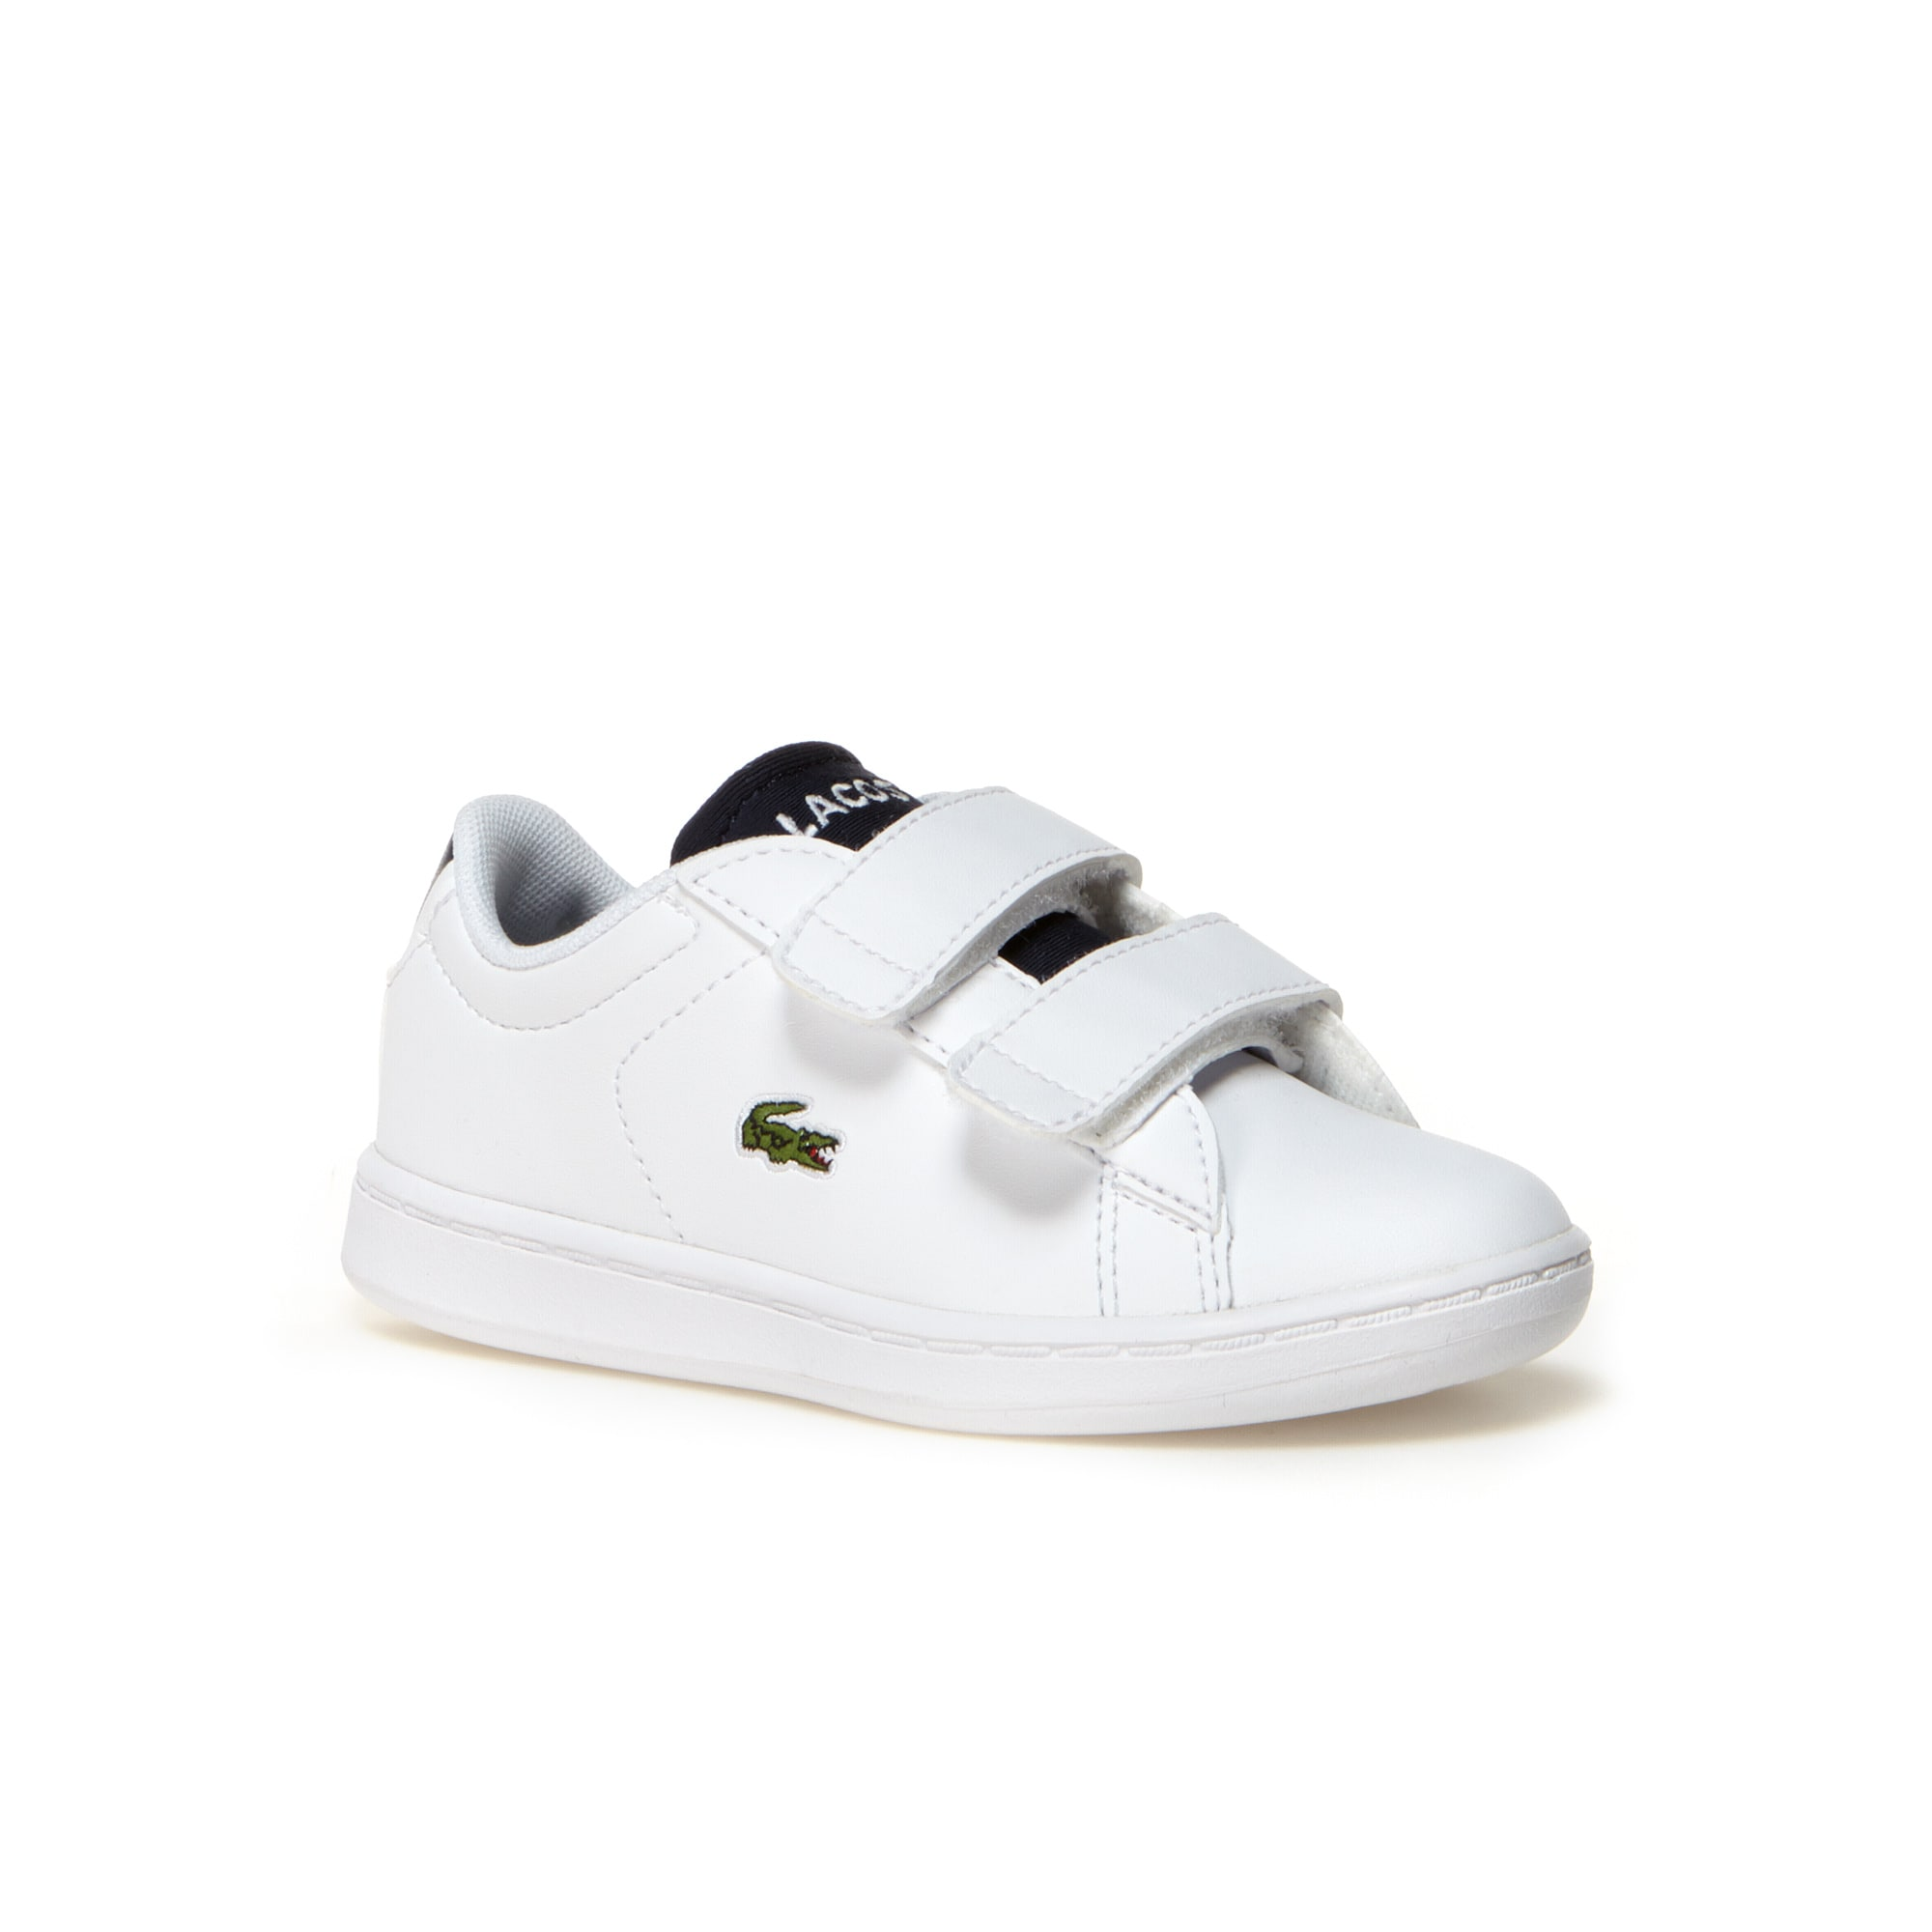 Kids' Carnaby Evo Hook and loop Strap Trainers